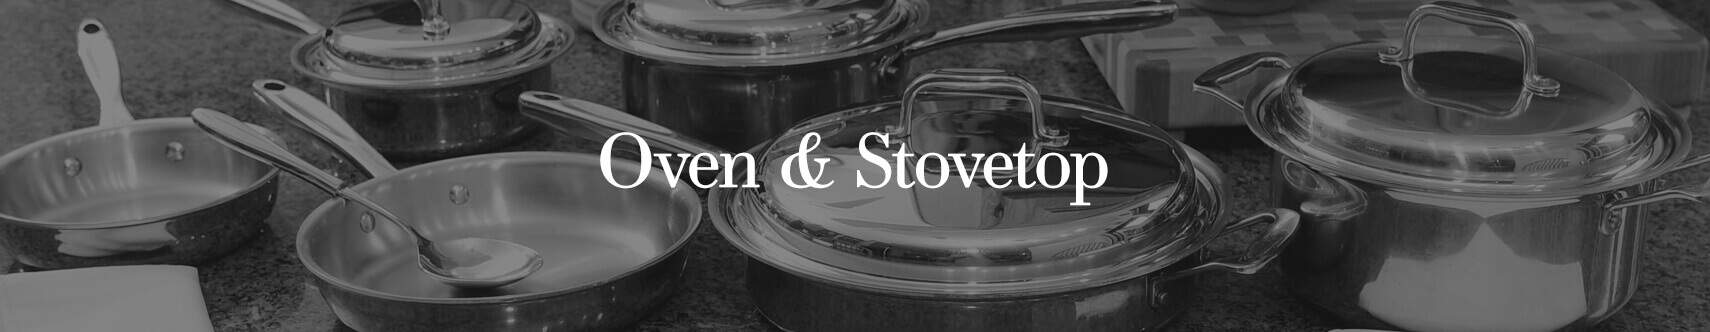 Oven & Stovetop